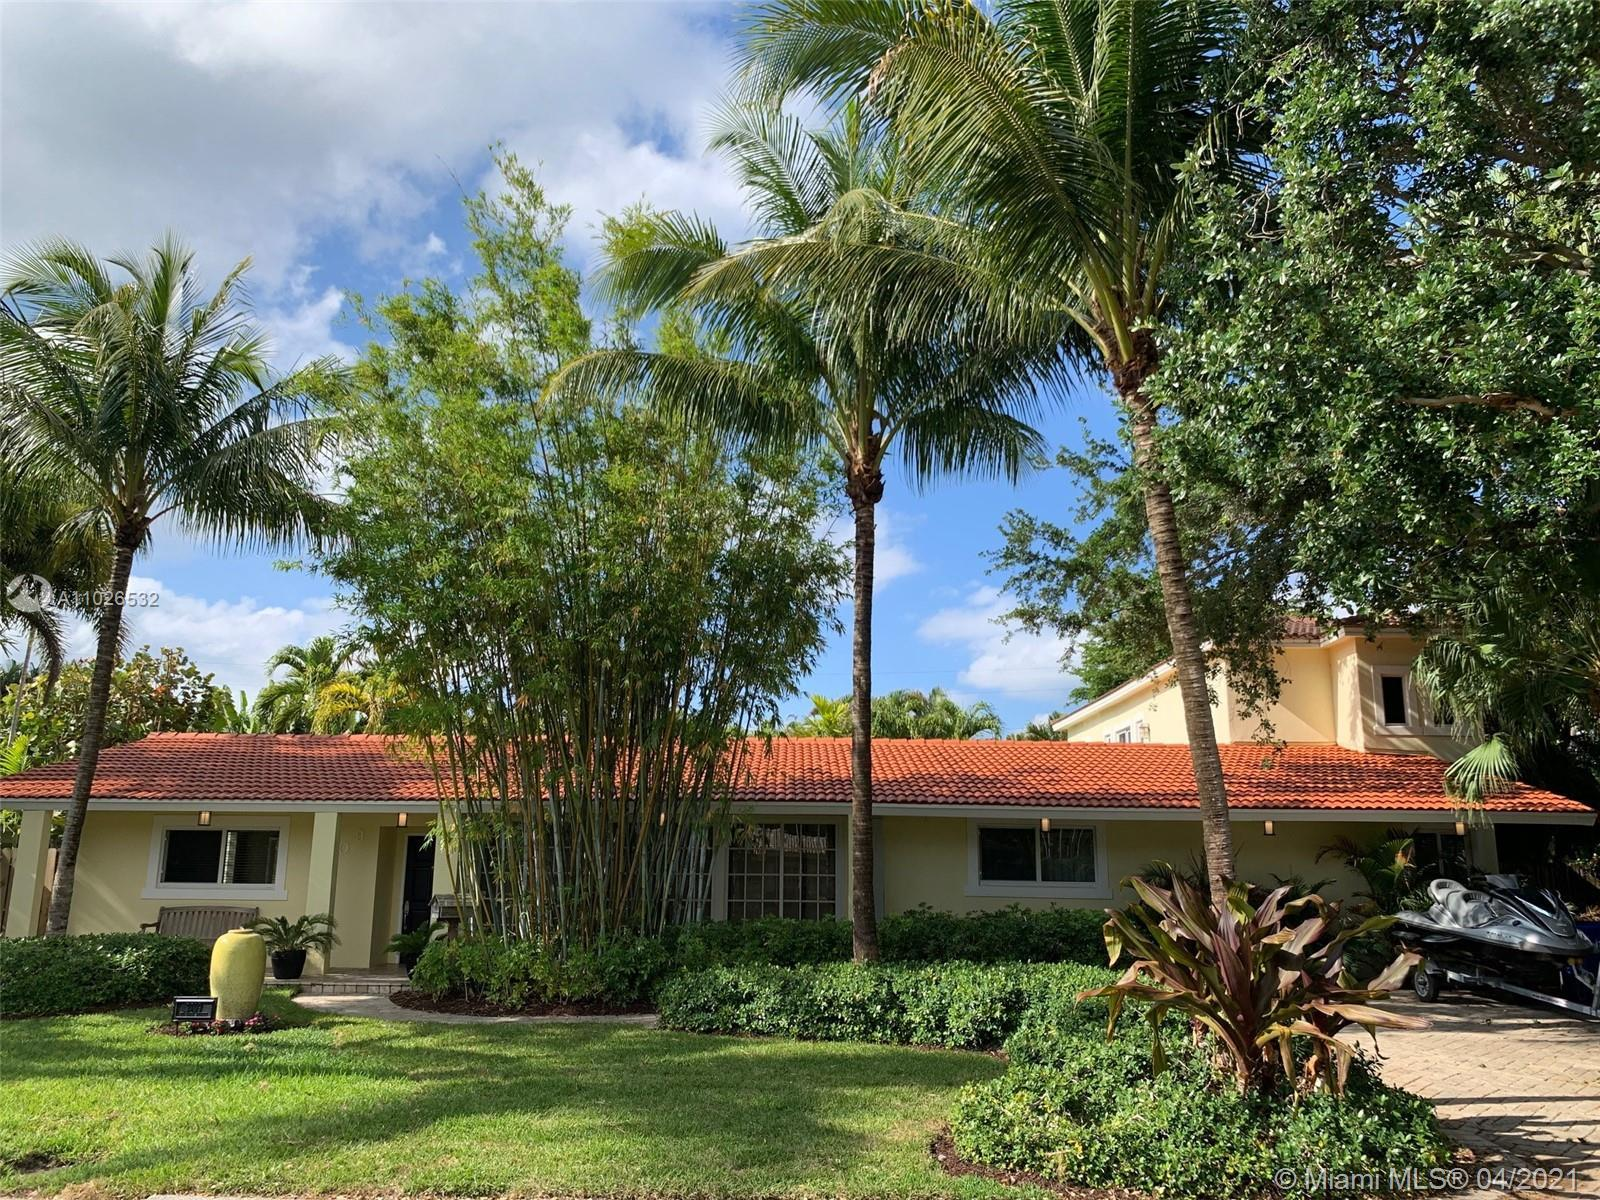 This beautiful and spacious 4br/3.5bath pool home in the highly desirable neighborhood of Coral Ridg